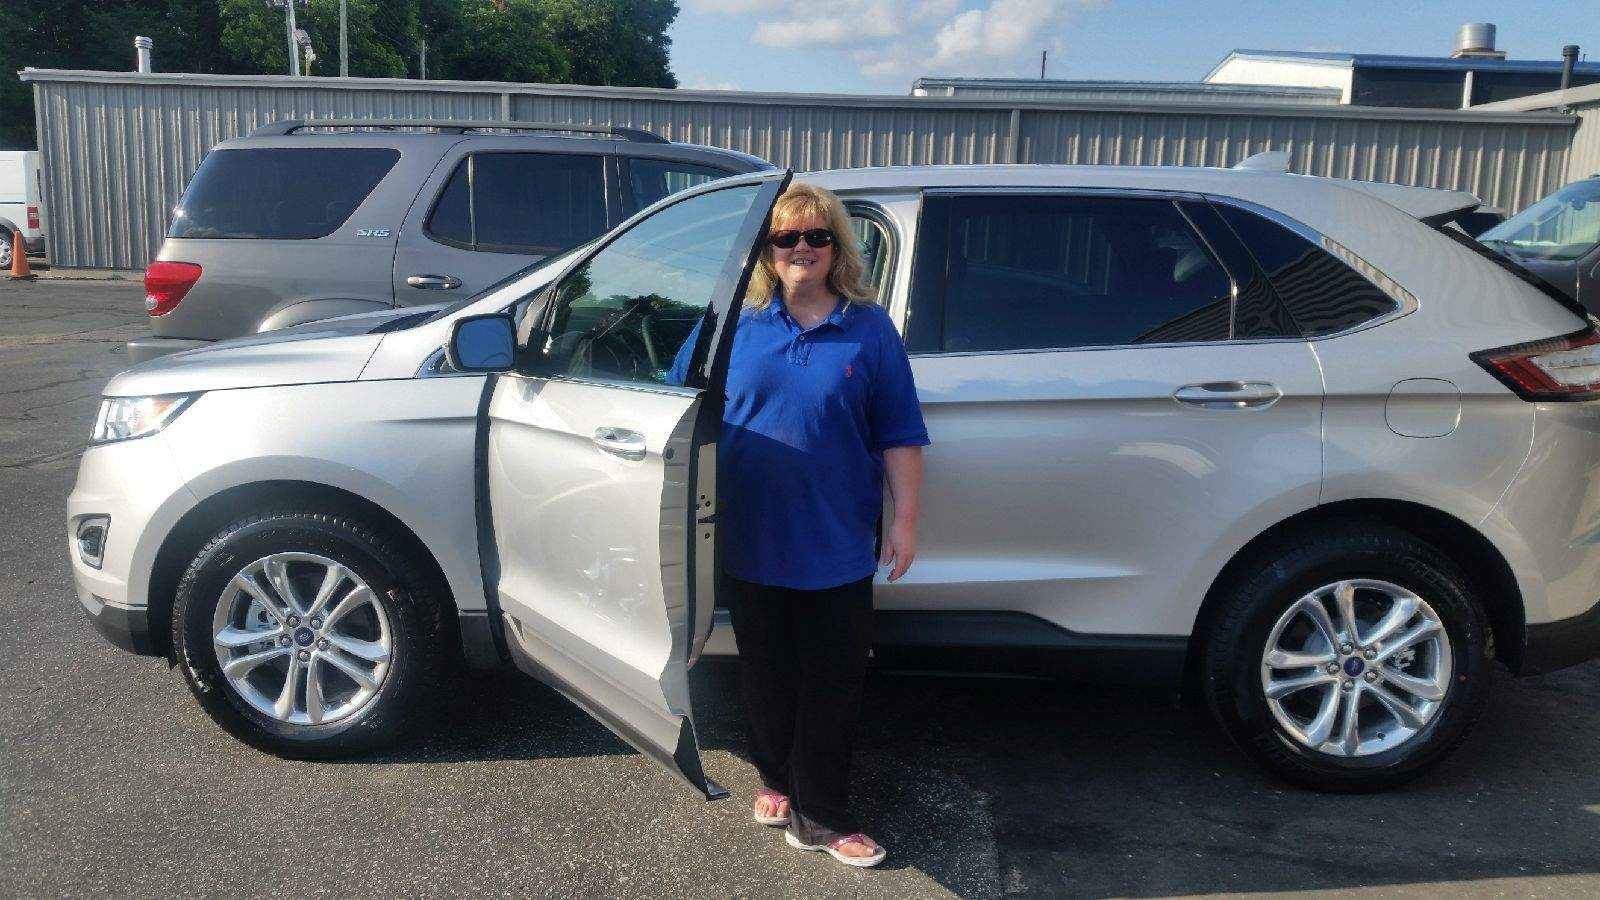 Hastings Ford Greenville Nc >> Happy Hastings Ford Owners   Hastings Ford Inc